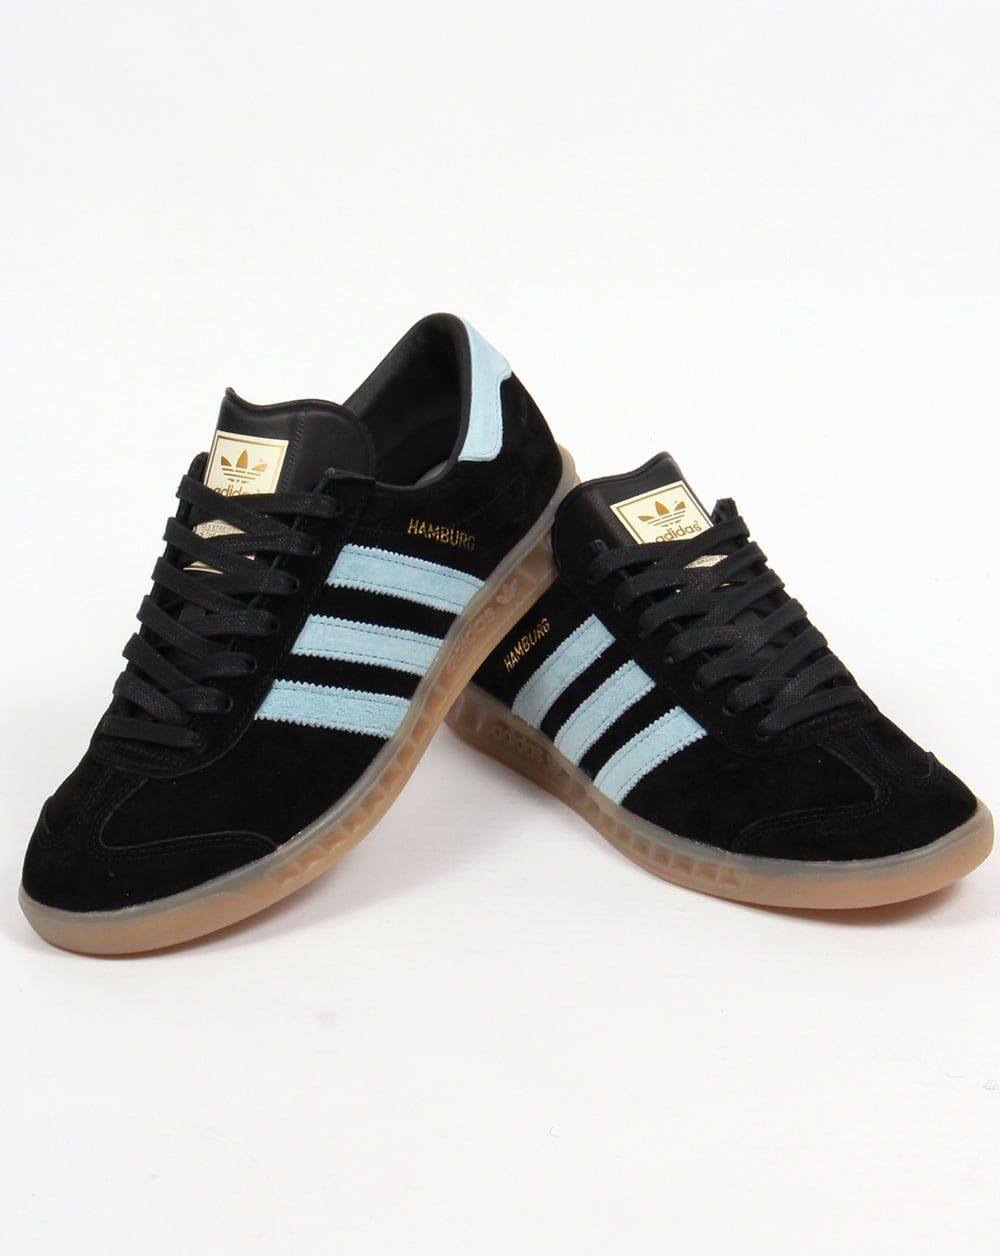 2f20a4fad50c adidas Originals Hamburg Trainers Black Sky Blue